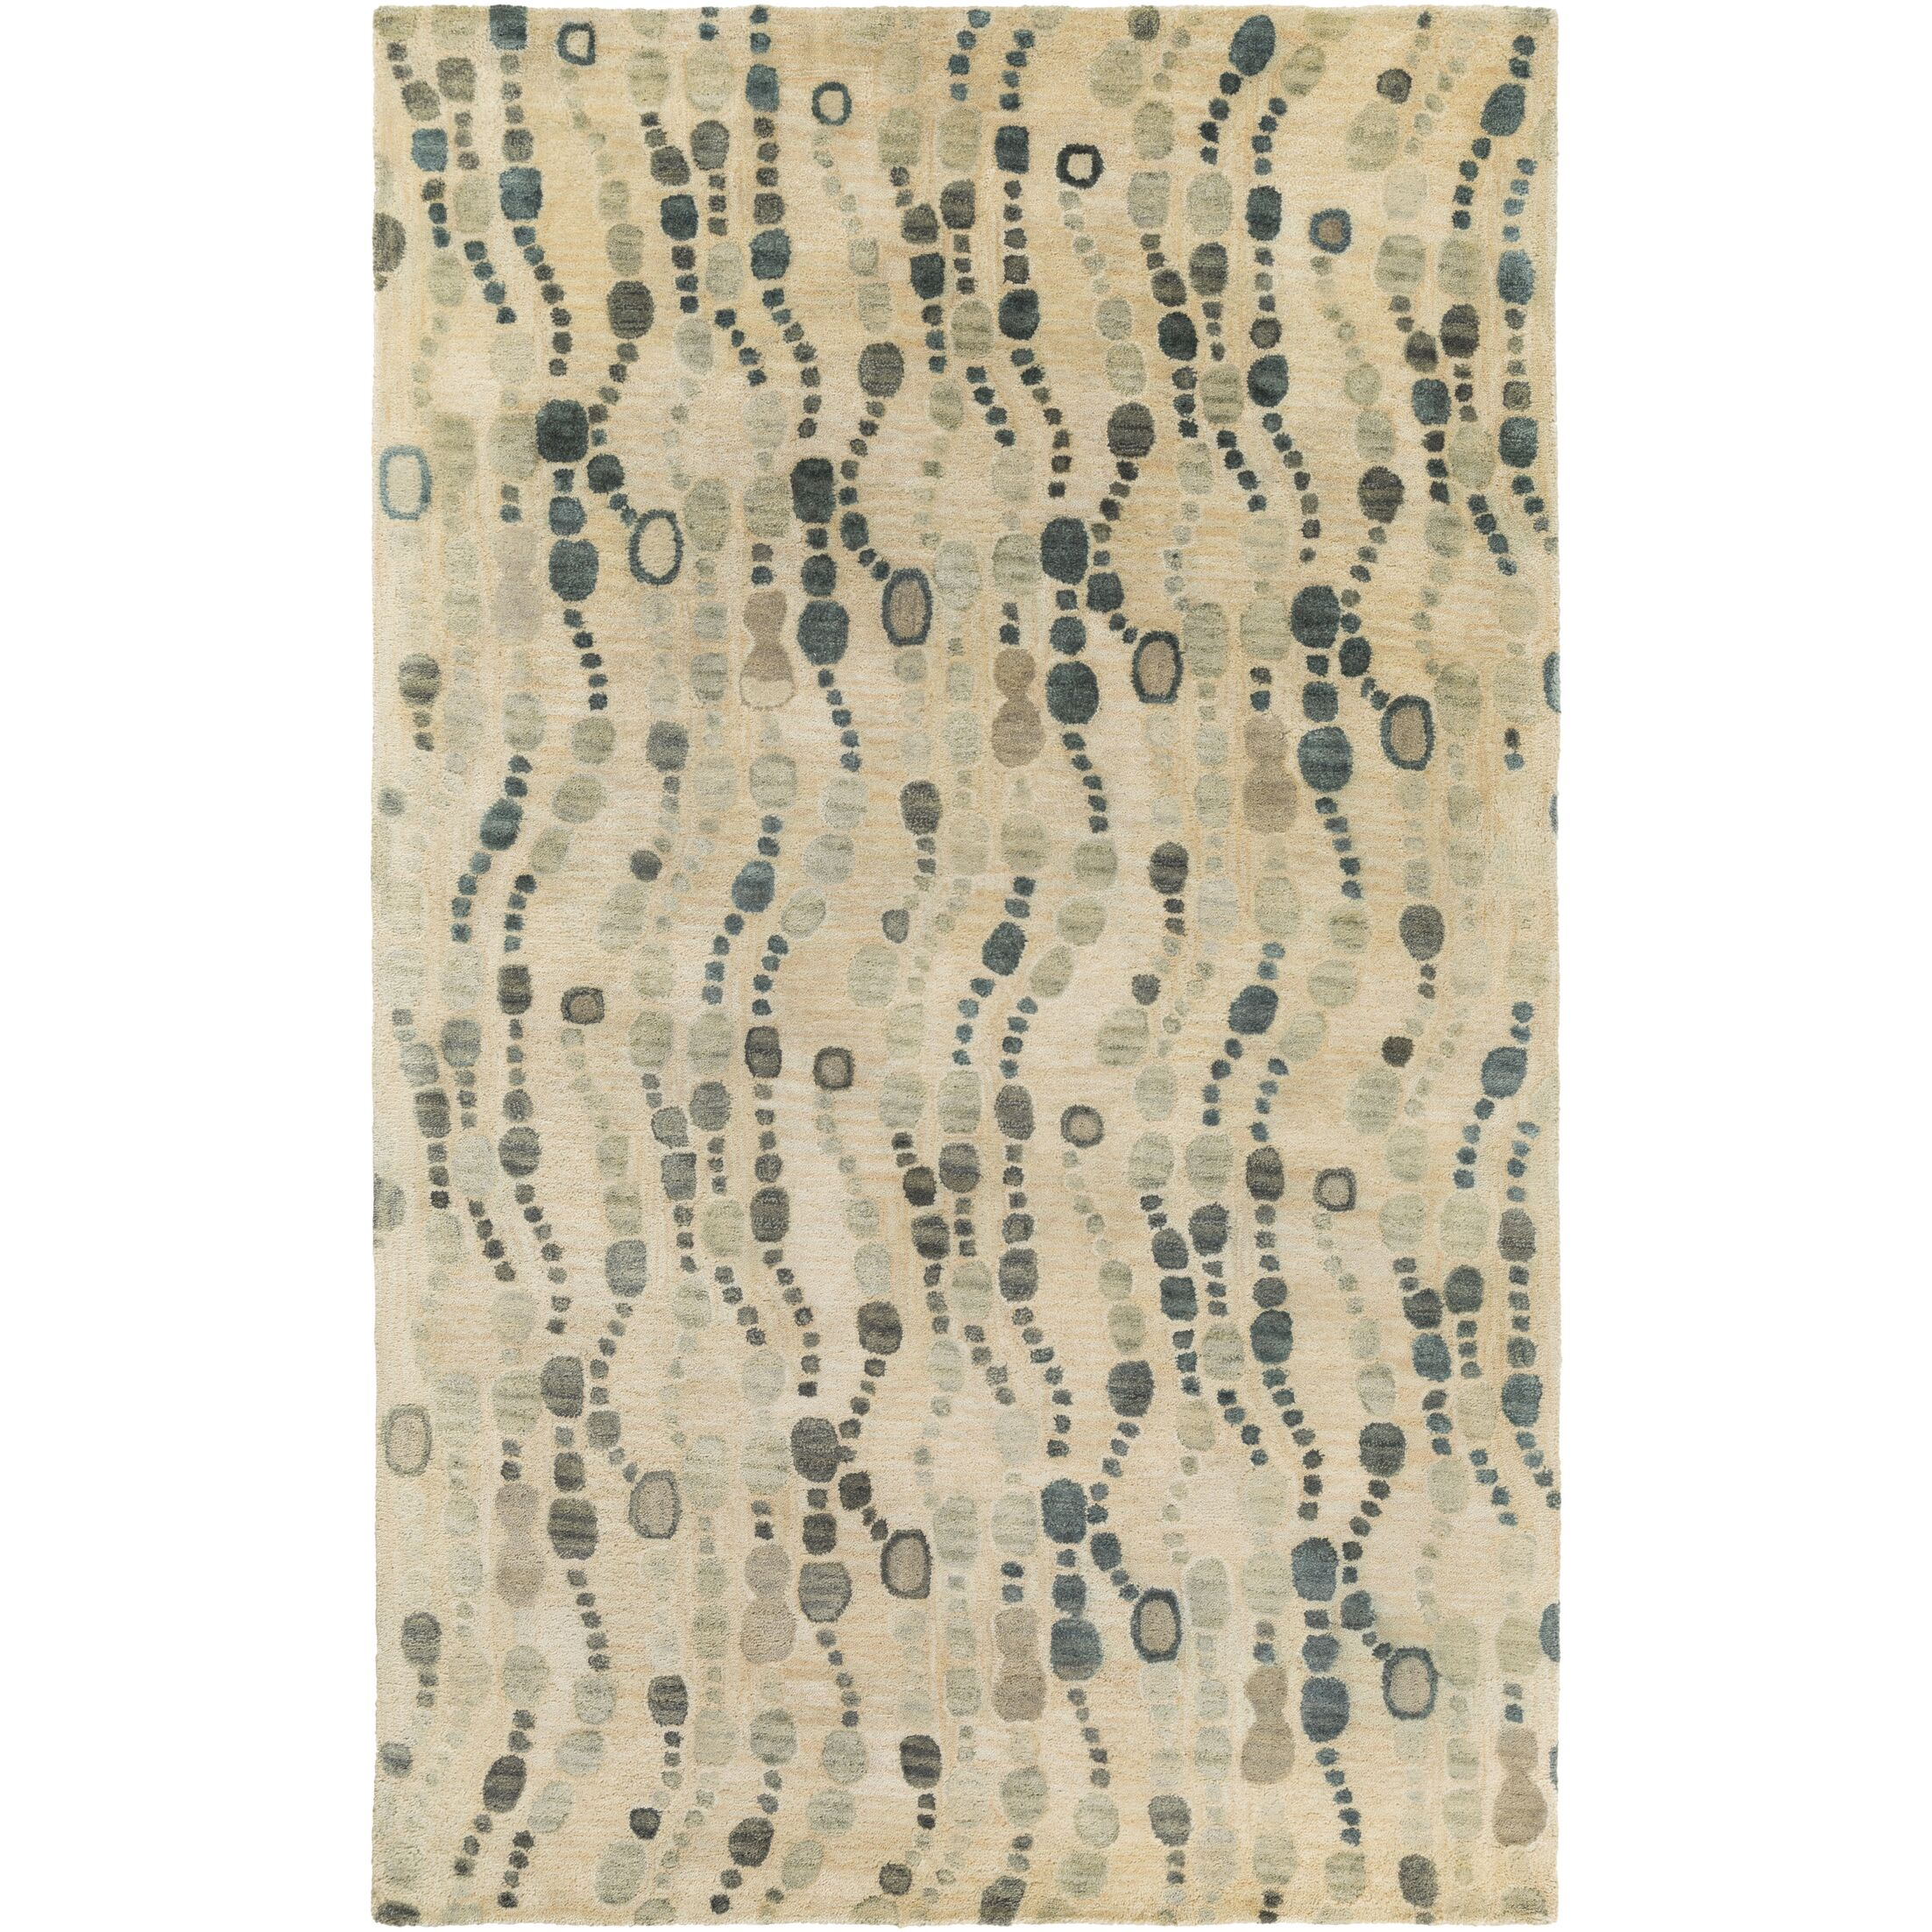 Natural Affinity Hand-Tufted Yellow/Beige Area Rug Rug Size: Rectangle 2' x 3'